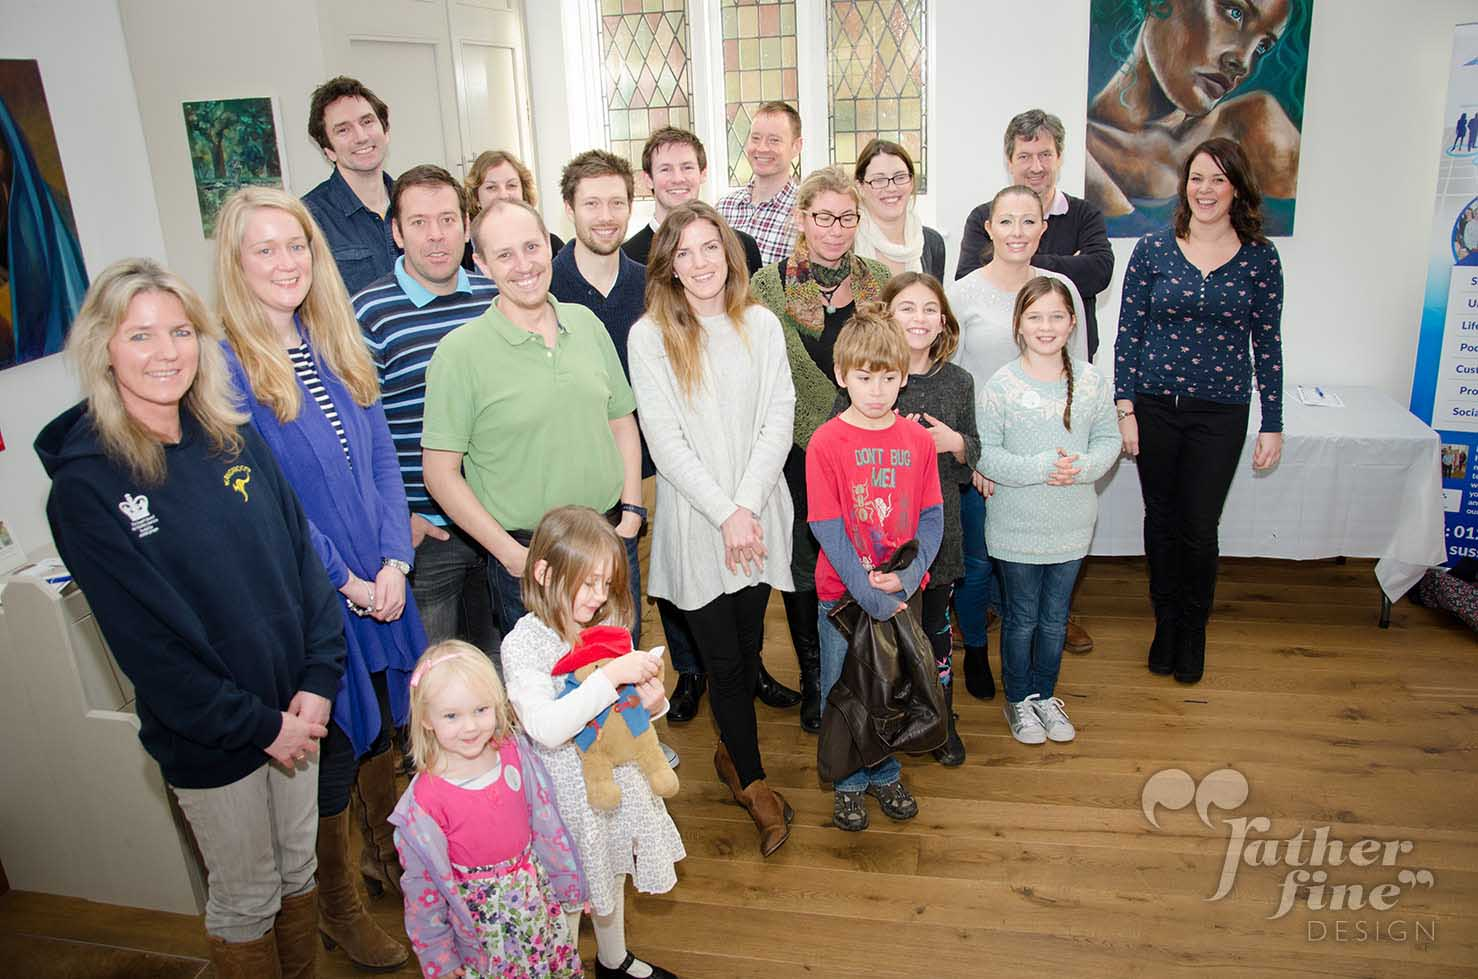 01 Sussex Pages Networking - Jan 2015